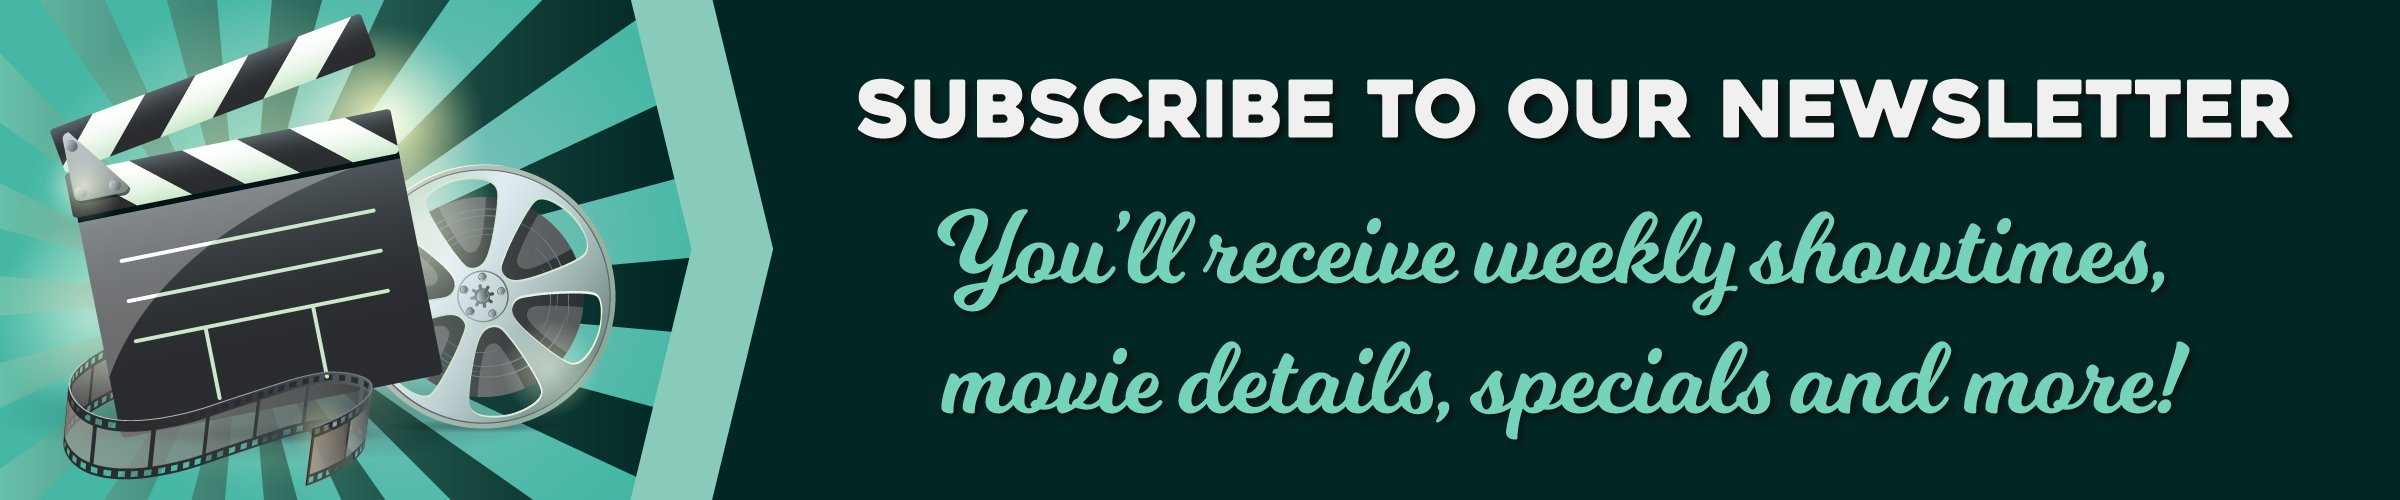 subscribe to our newsletter for weekly showtimes, movie details, specials and more!